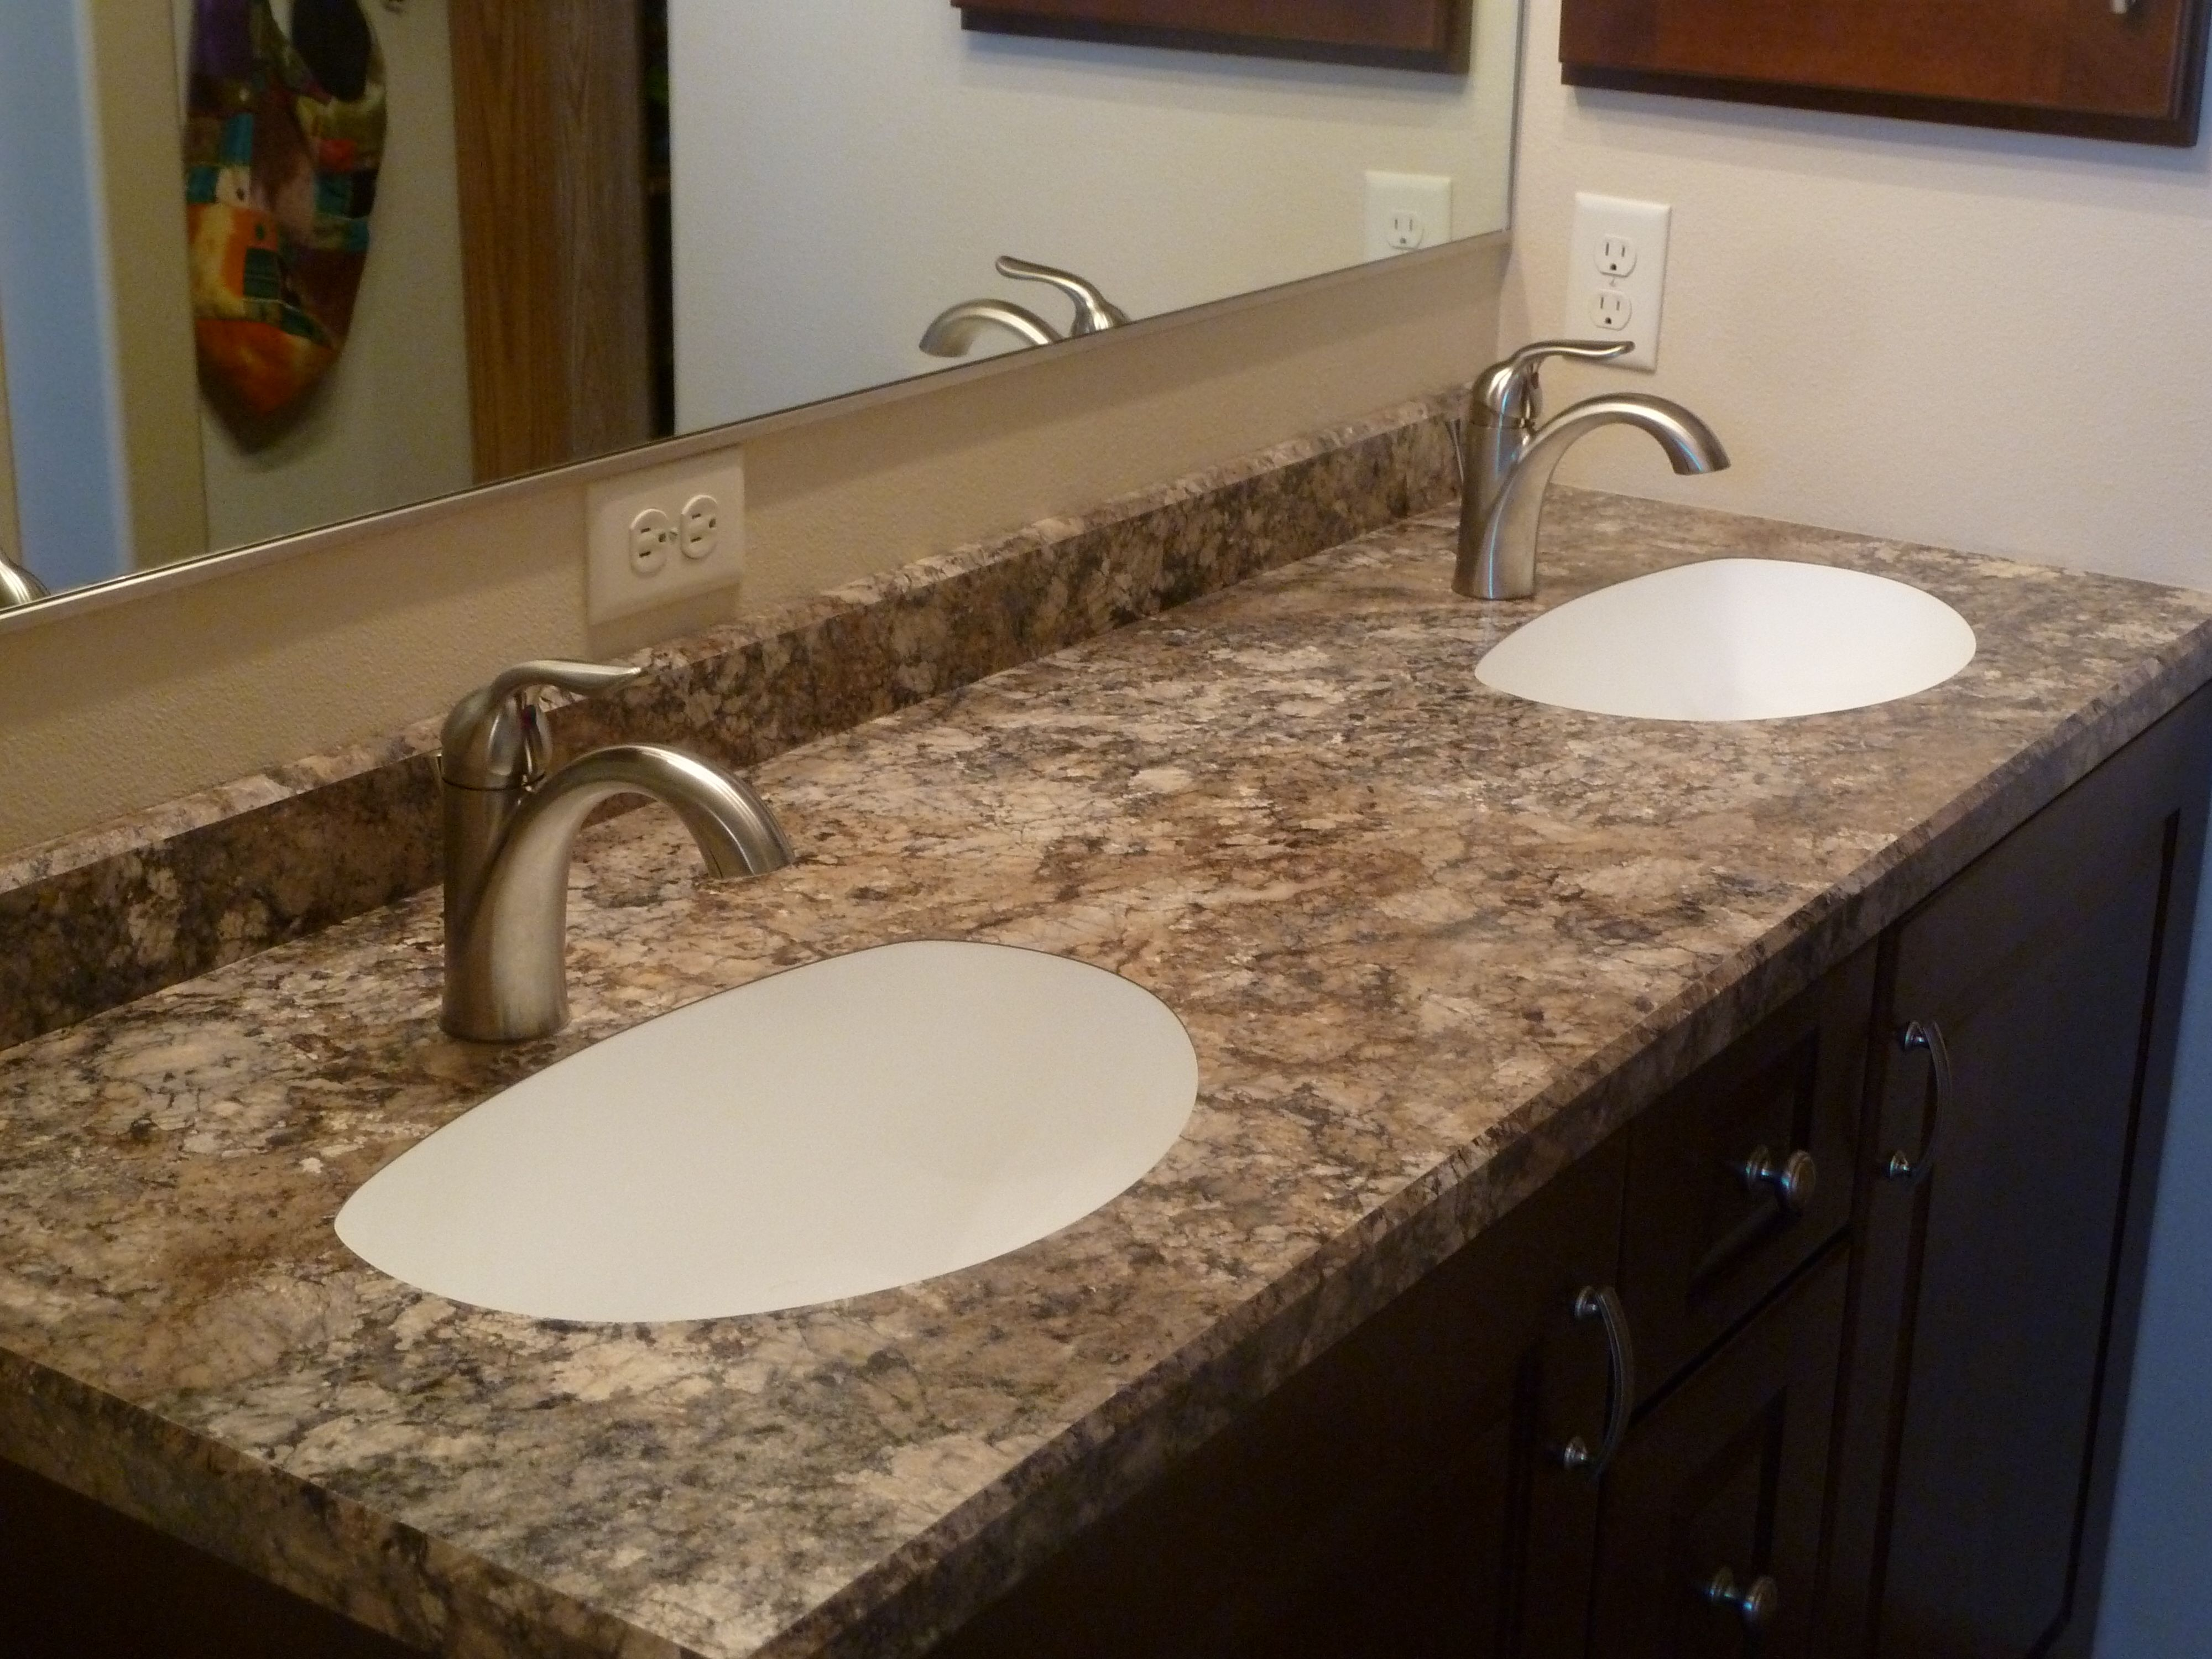 Double Undermount Karran Sinks In Wilsonart Laminate Counter Top